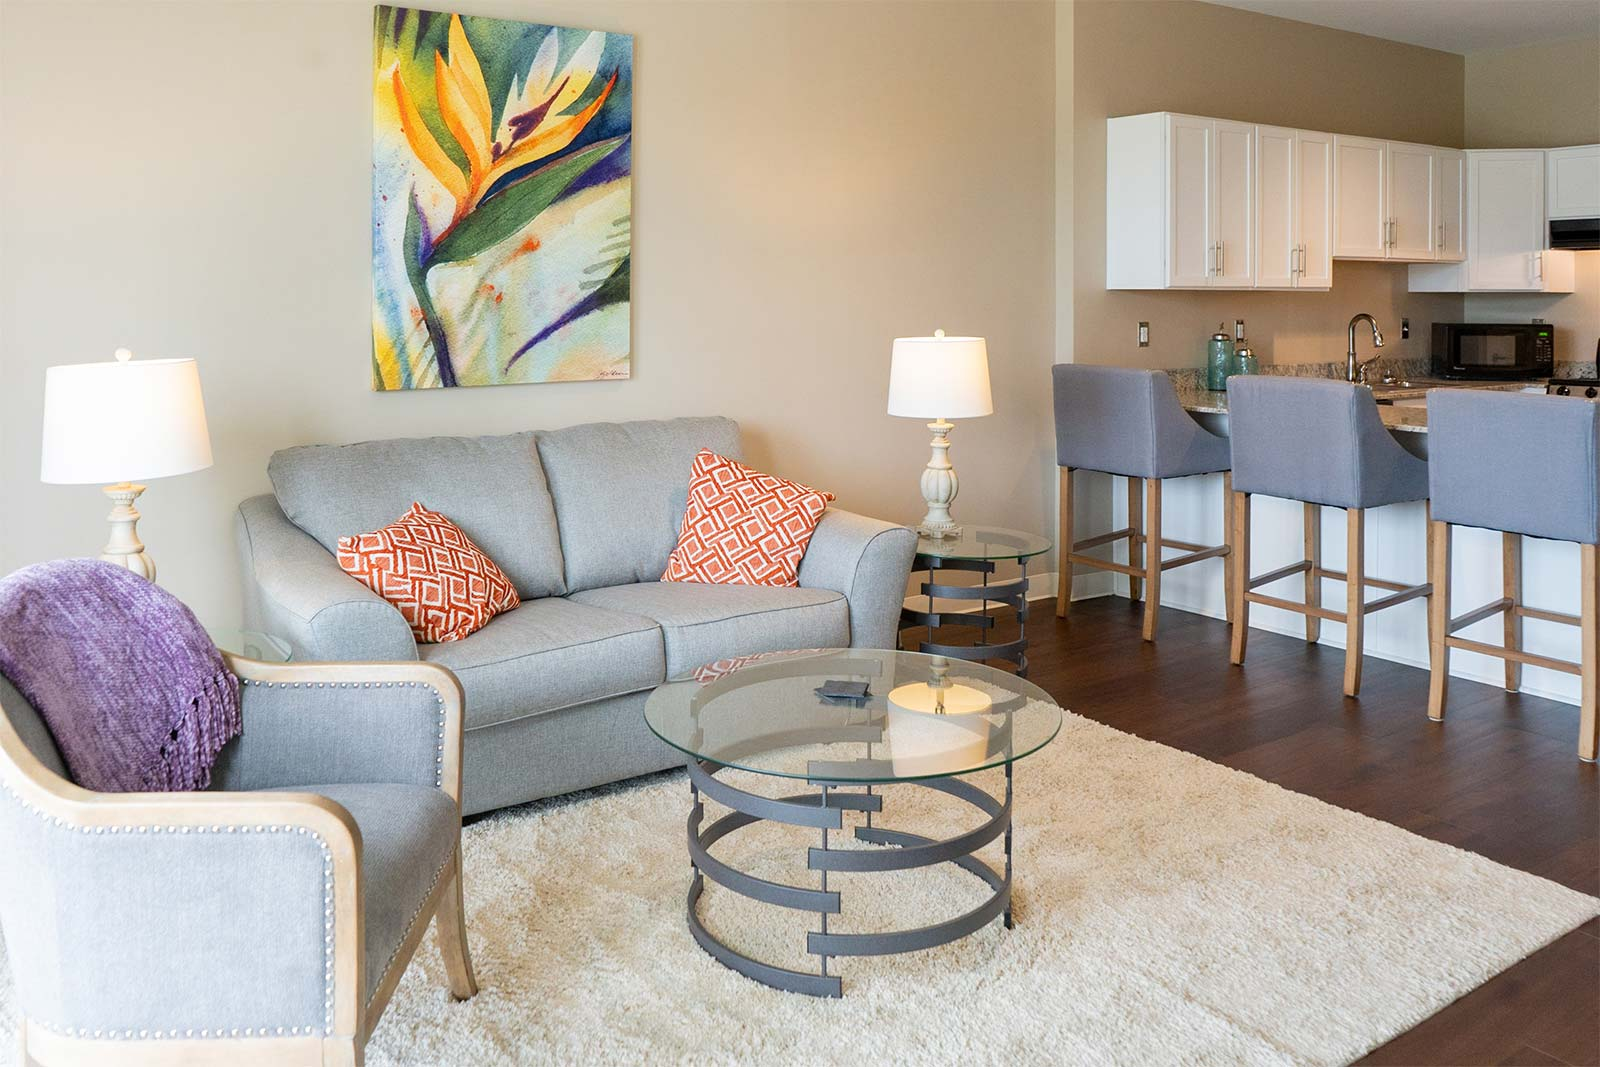 Independent living apartment living room at The Arbors of Gulf Breeze in Gulf Breeze, FL